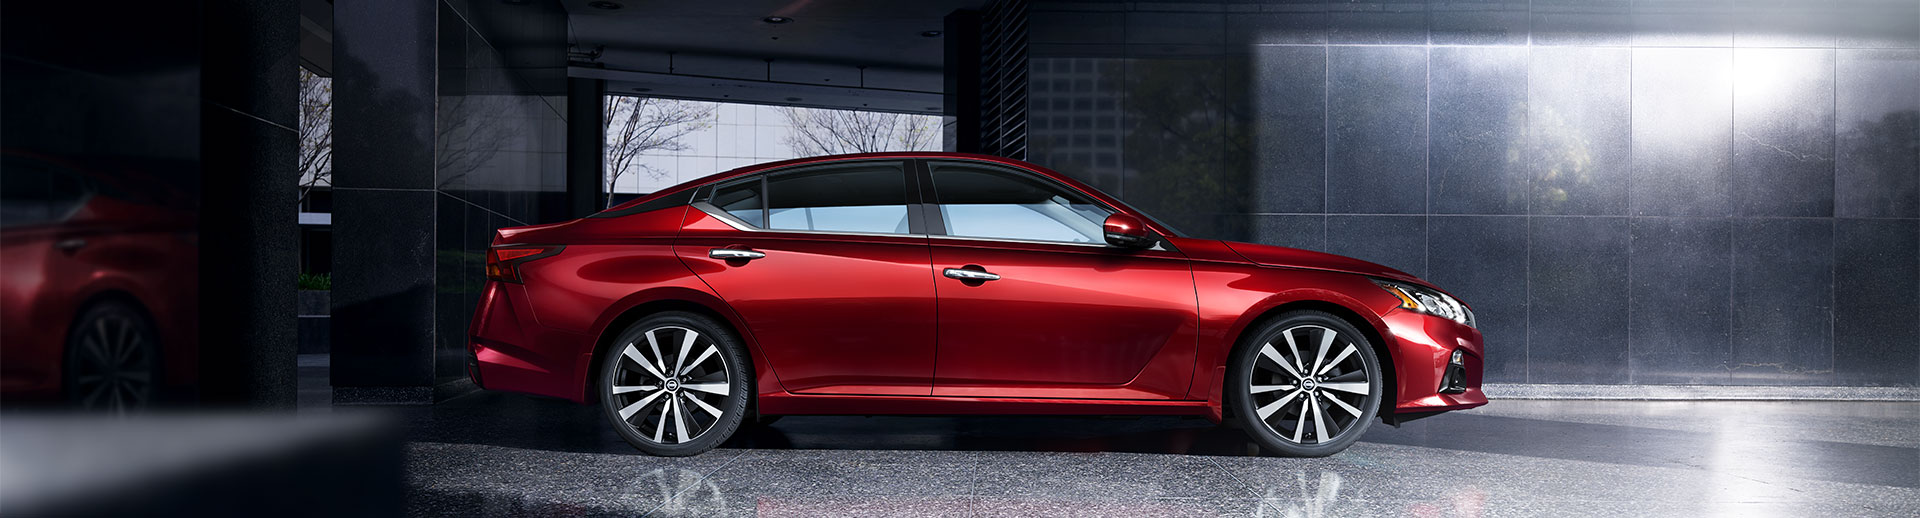 2021 Nissan Altima Lifestyle Photo